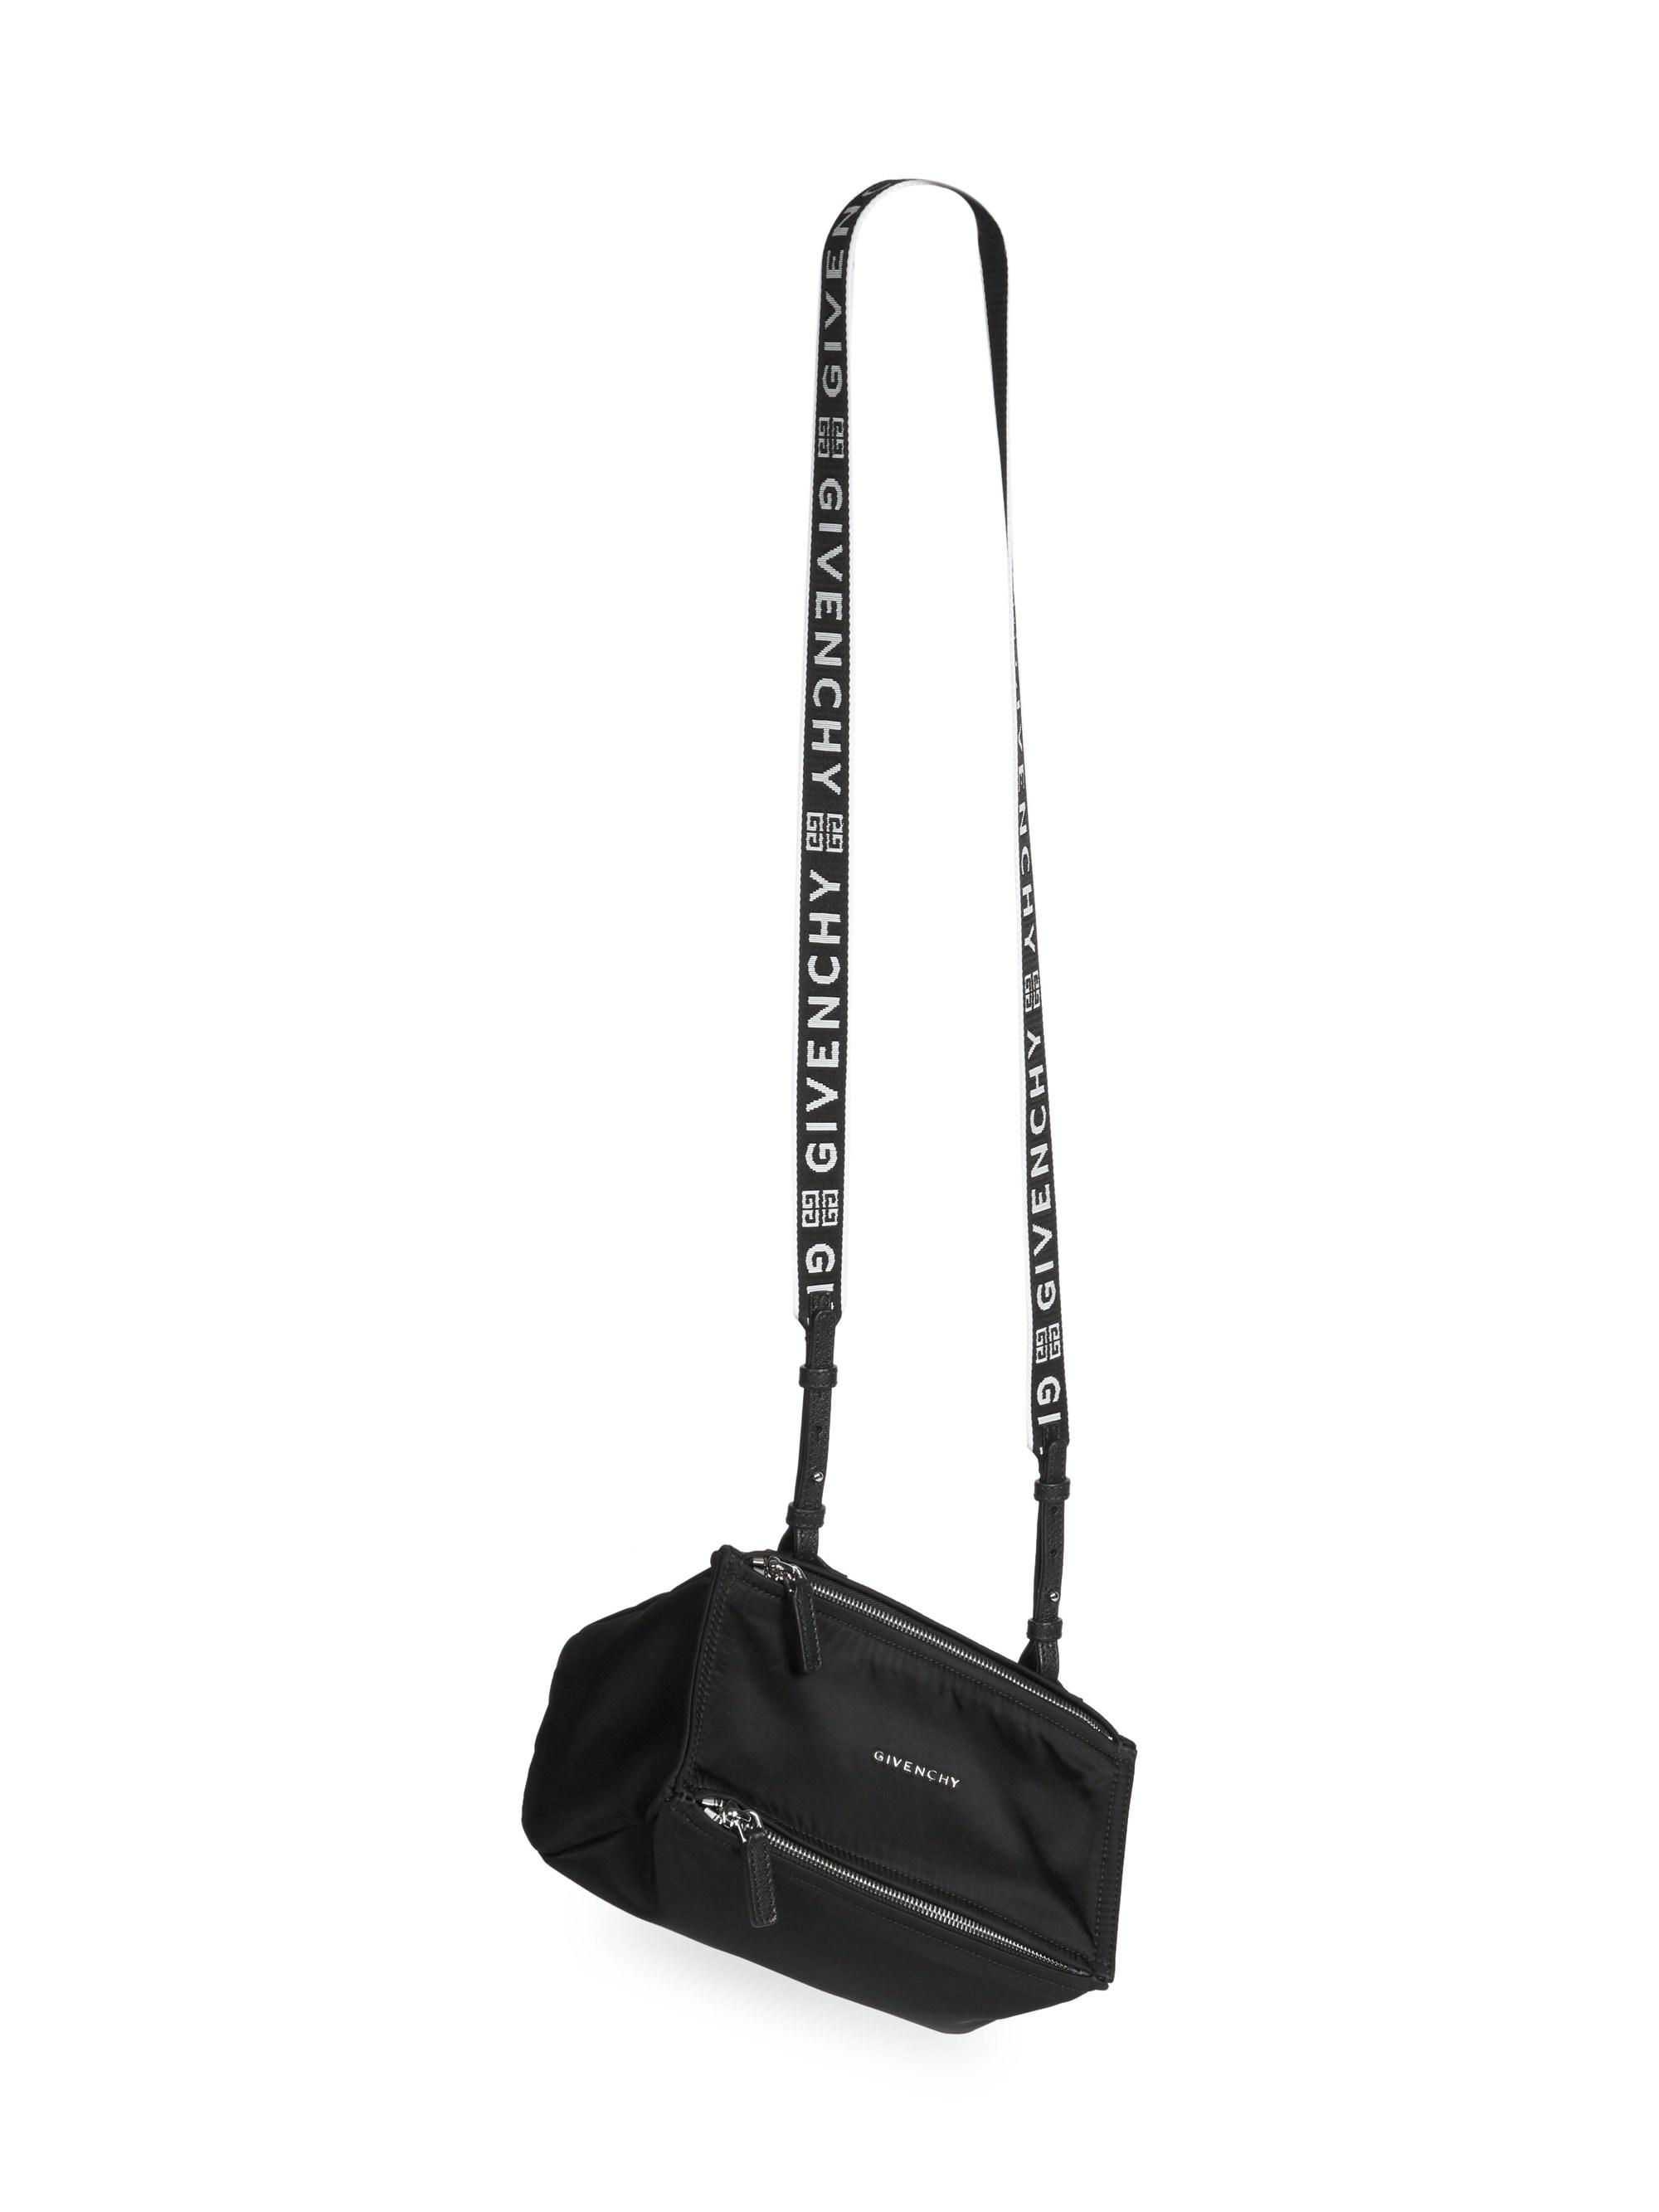 6356365e407 Givenchy - Women s Mini Nylon Pandora Bag With Logo Strap - Black - Lyst.  View fullscreen